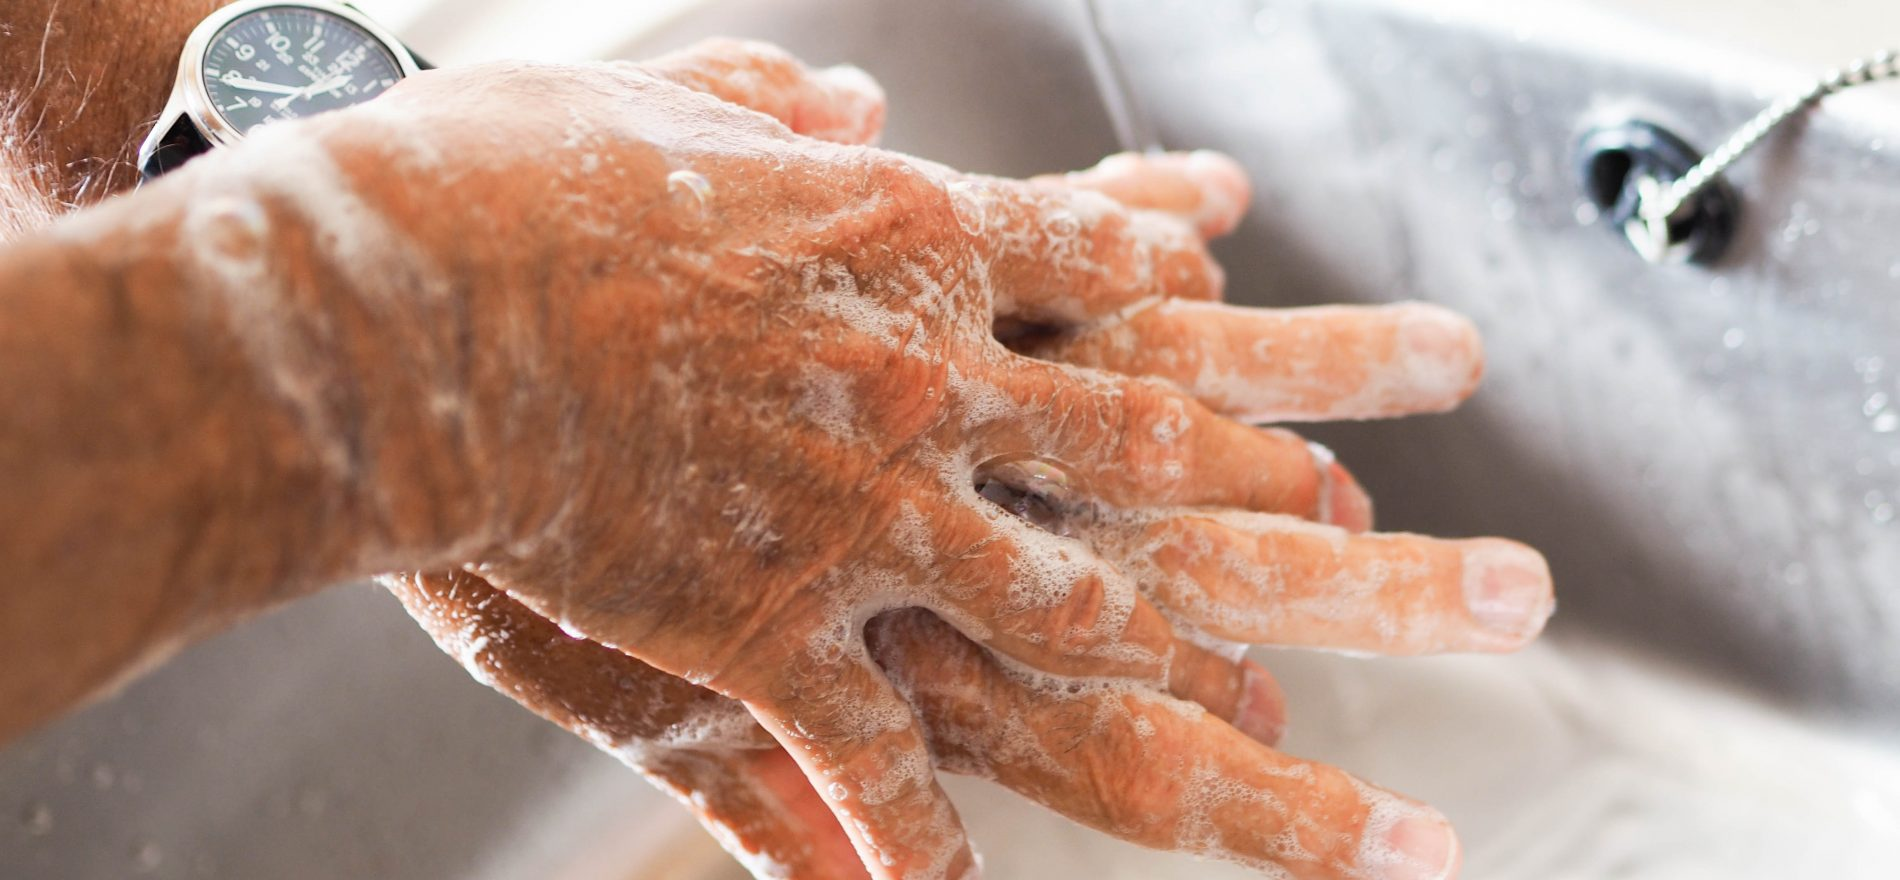 person washing hands with liquid soap